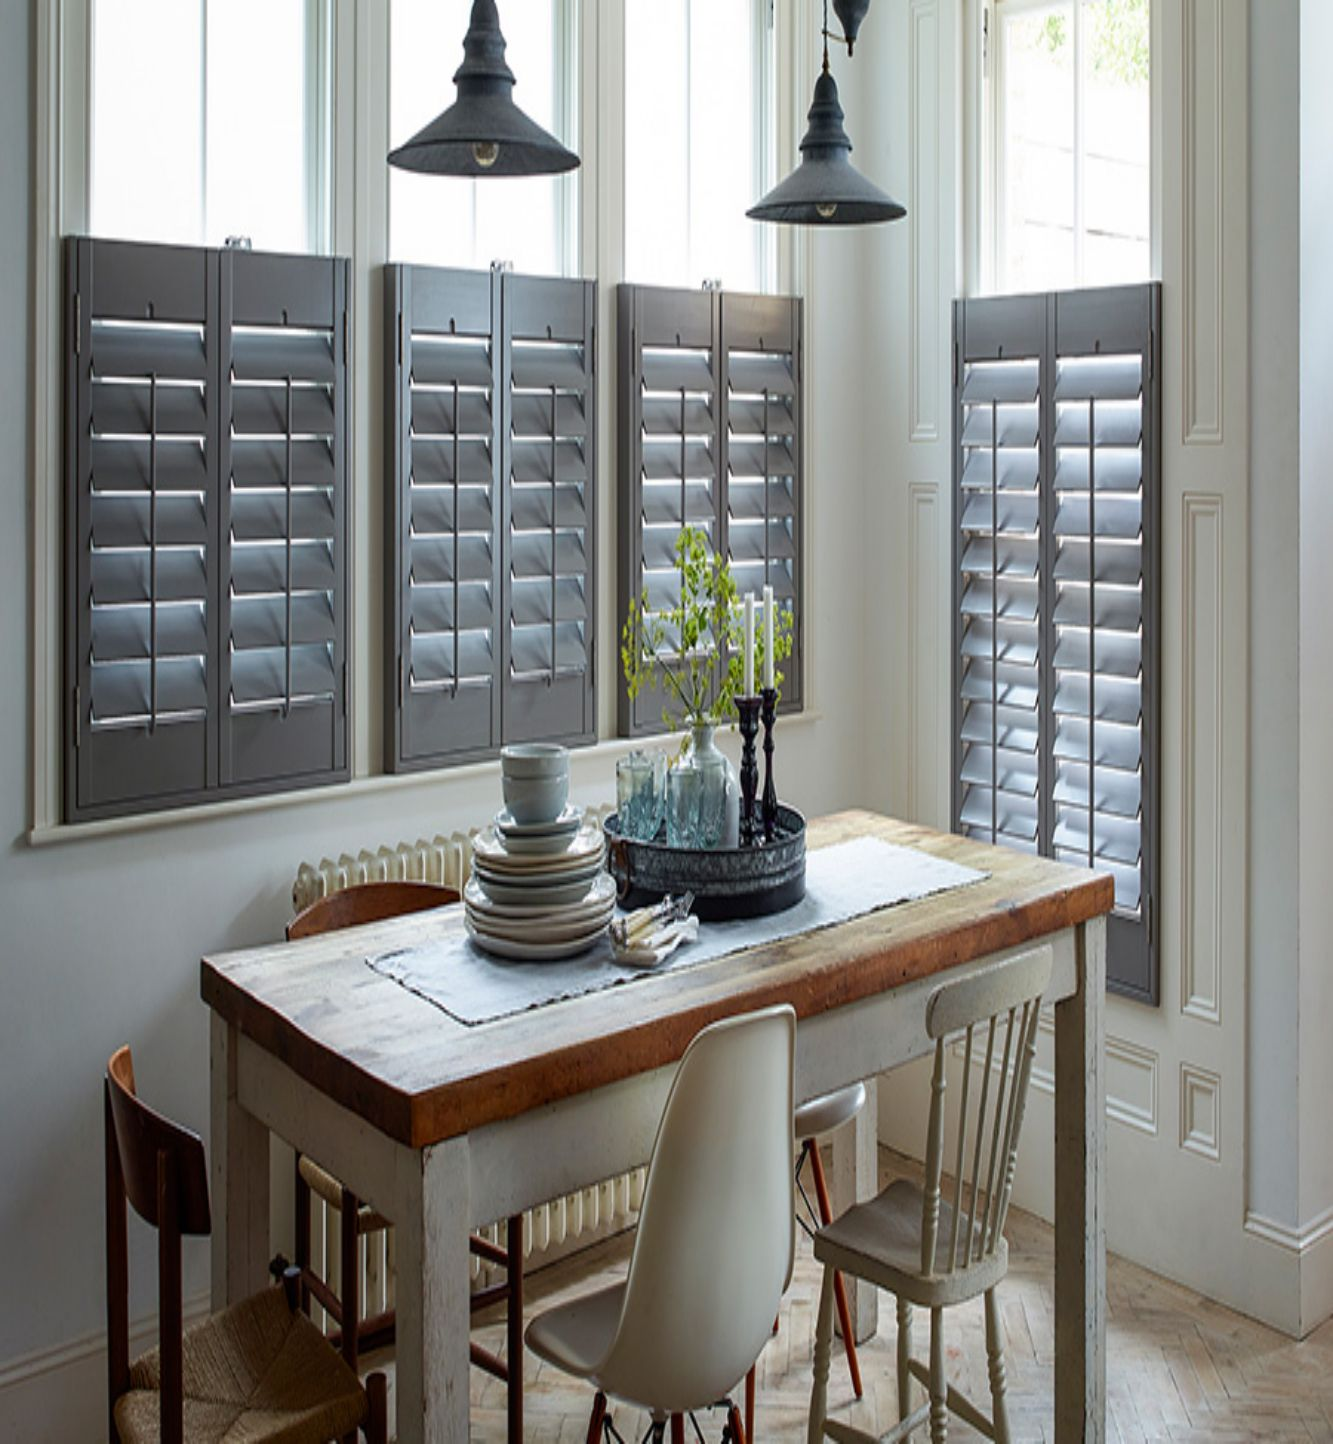 Cafe style shutters by shutter master of london uk cafe